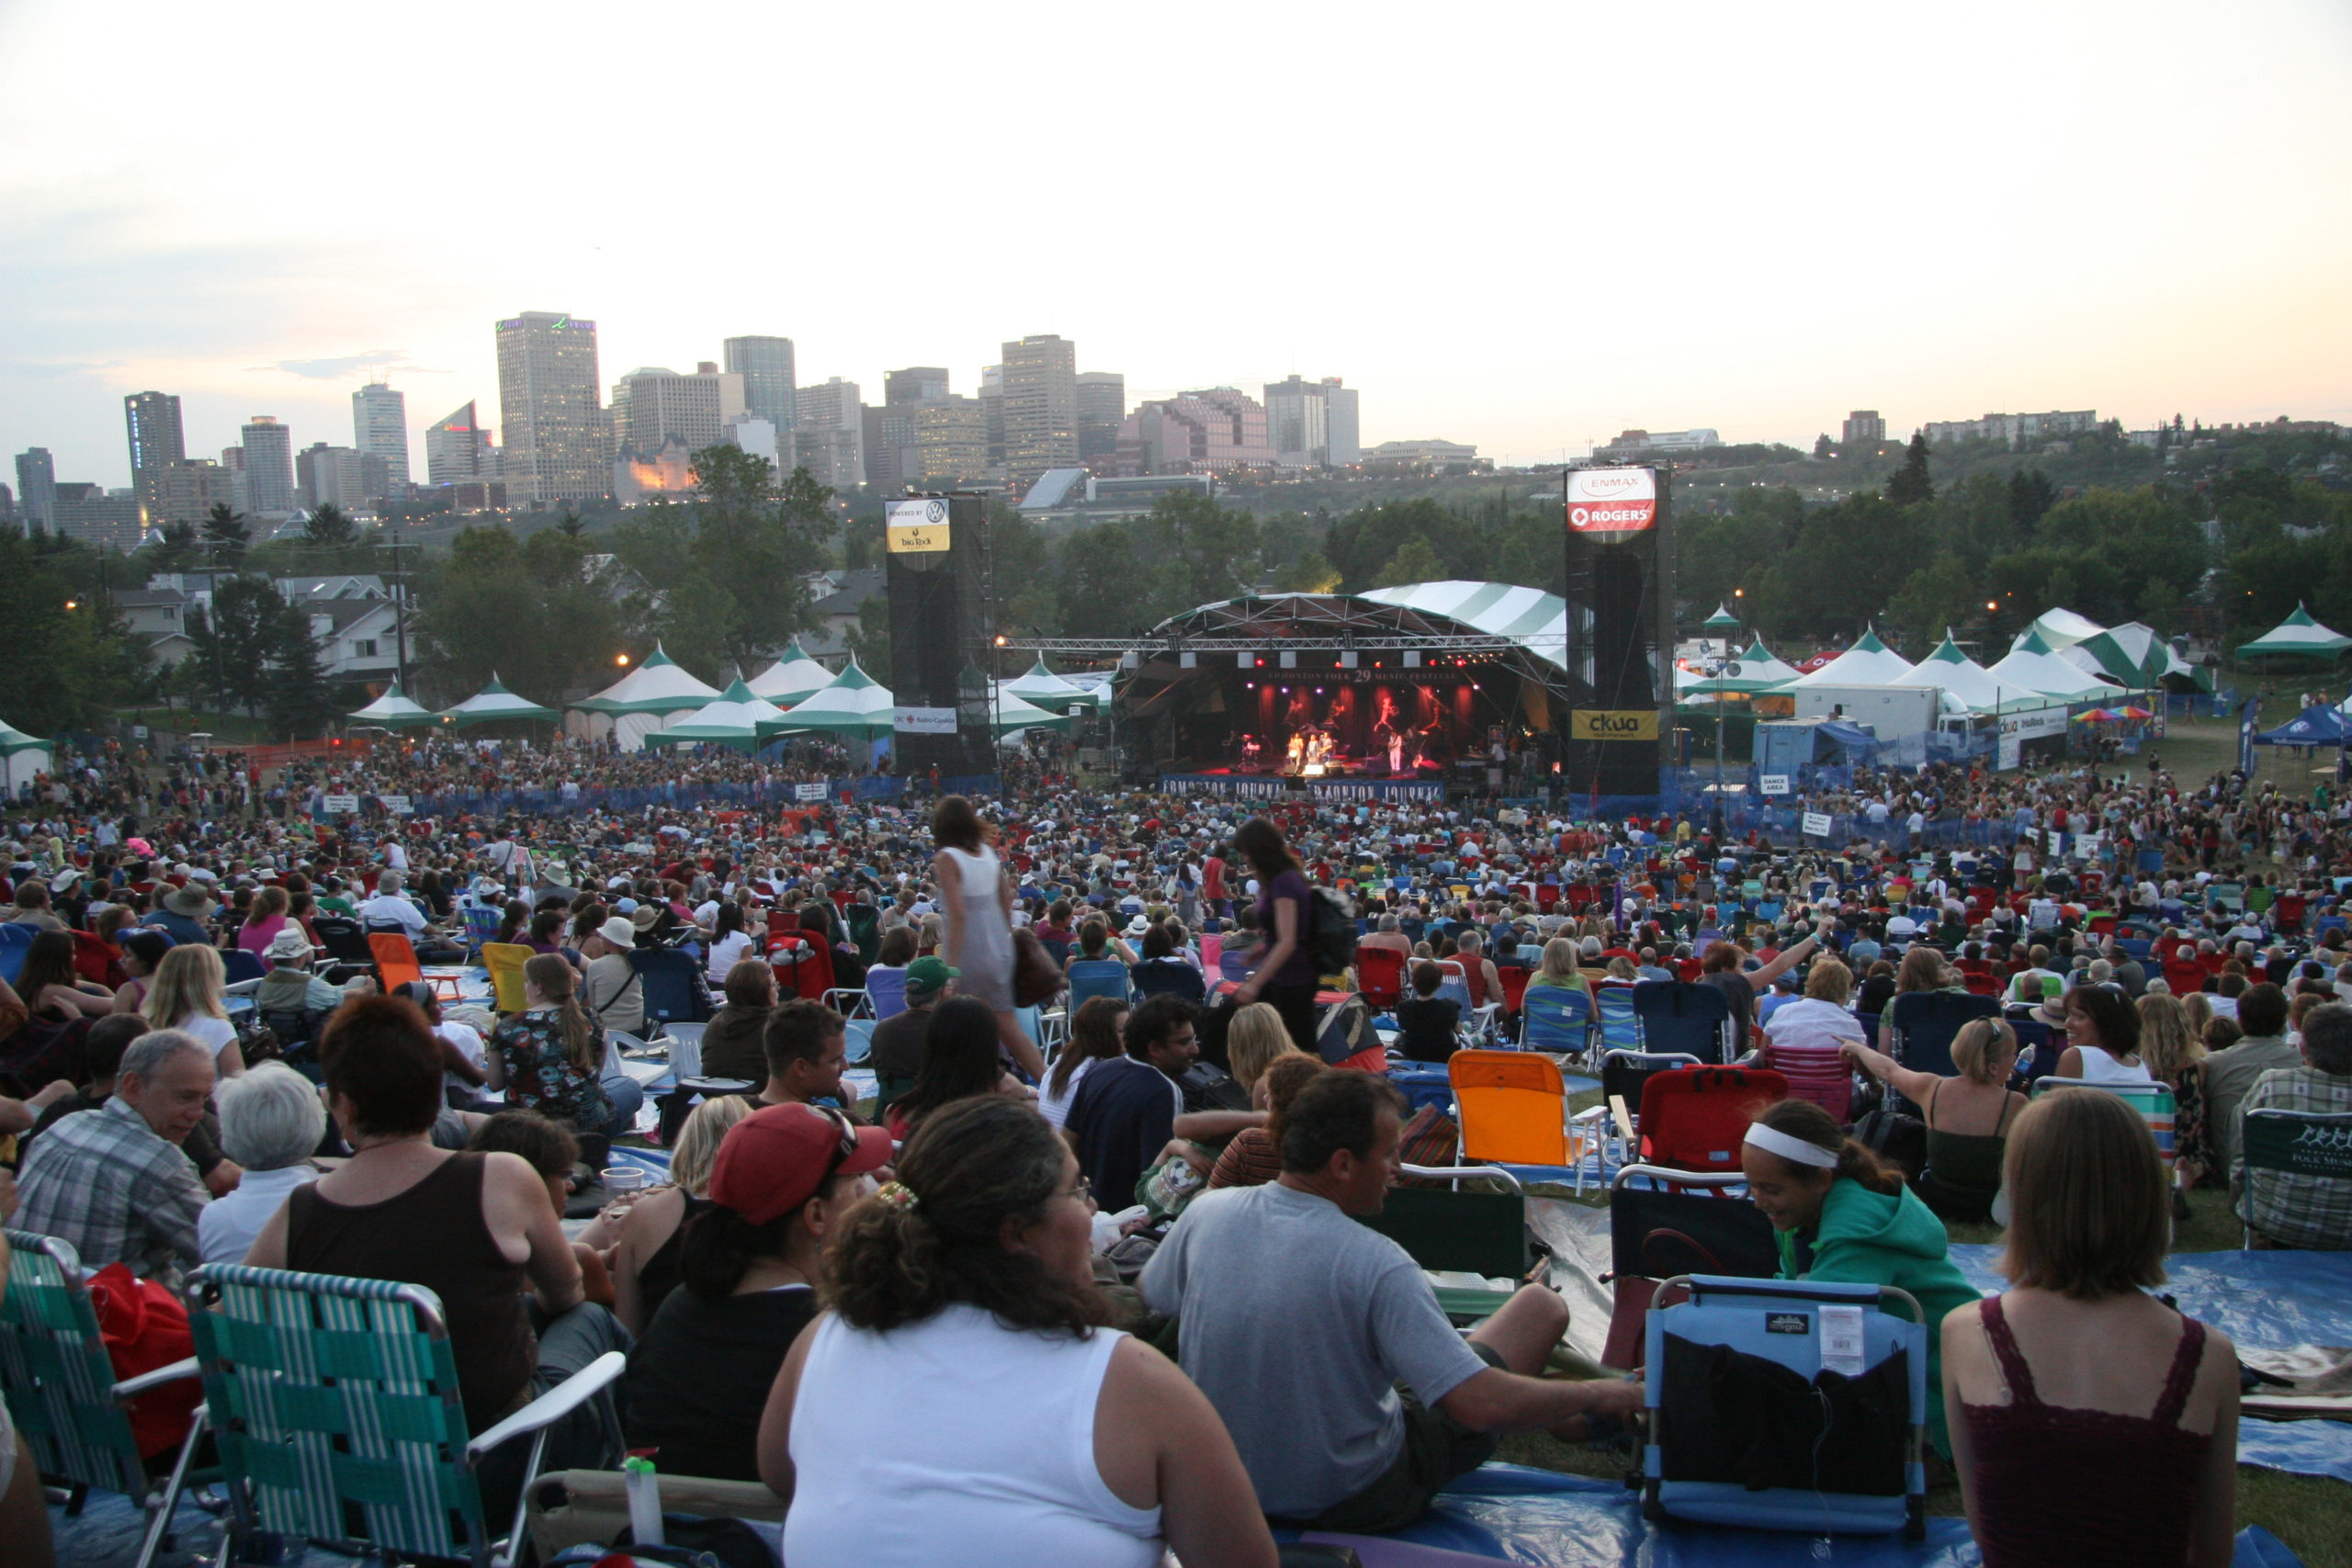 WHAT TO DO IF YOU WERE EVACUATED FROM EDMONTON'S FOLK FEST THURSDAY NIGHT